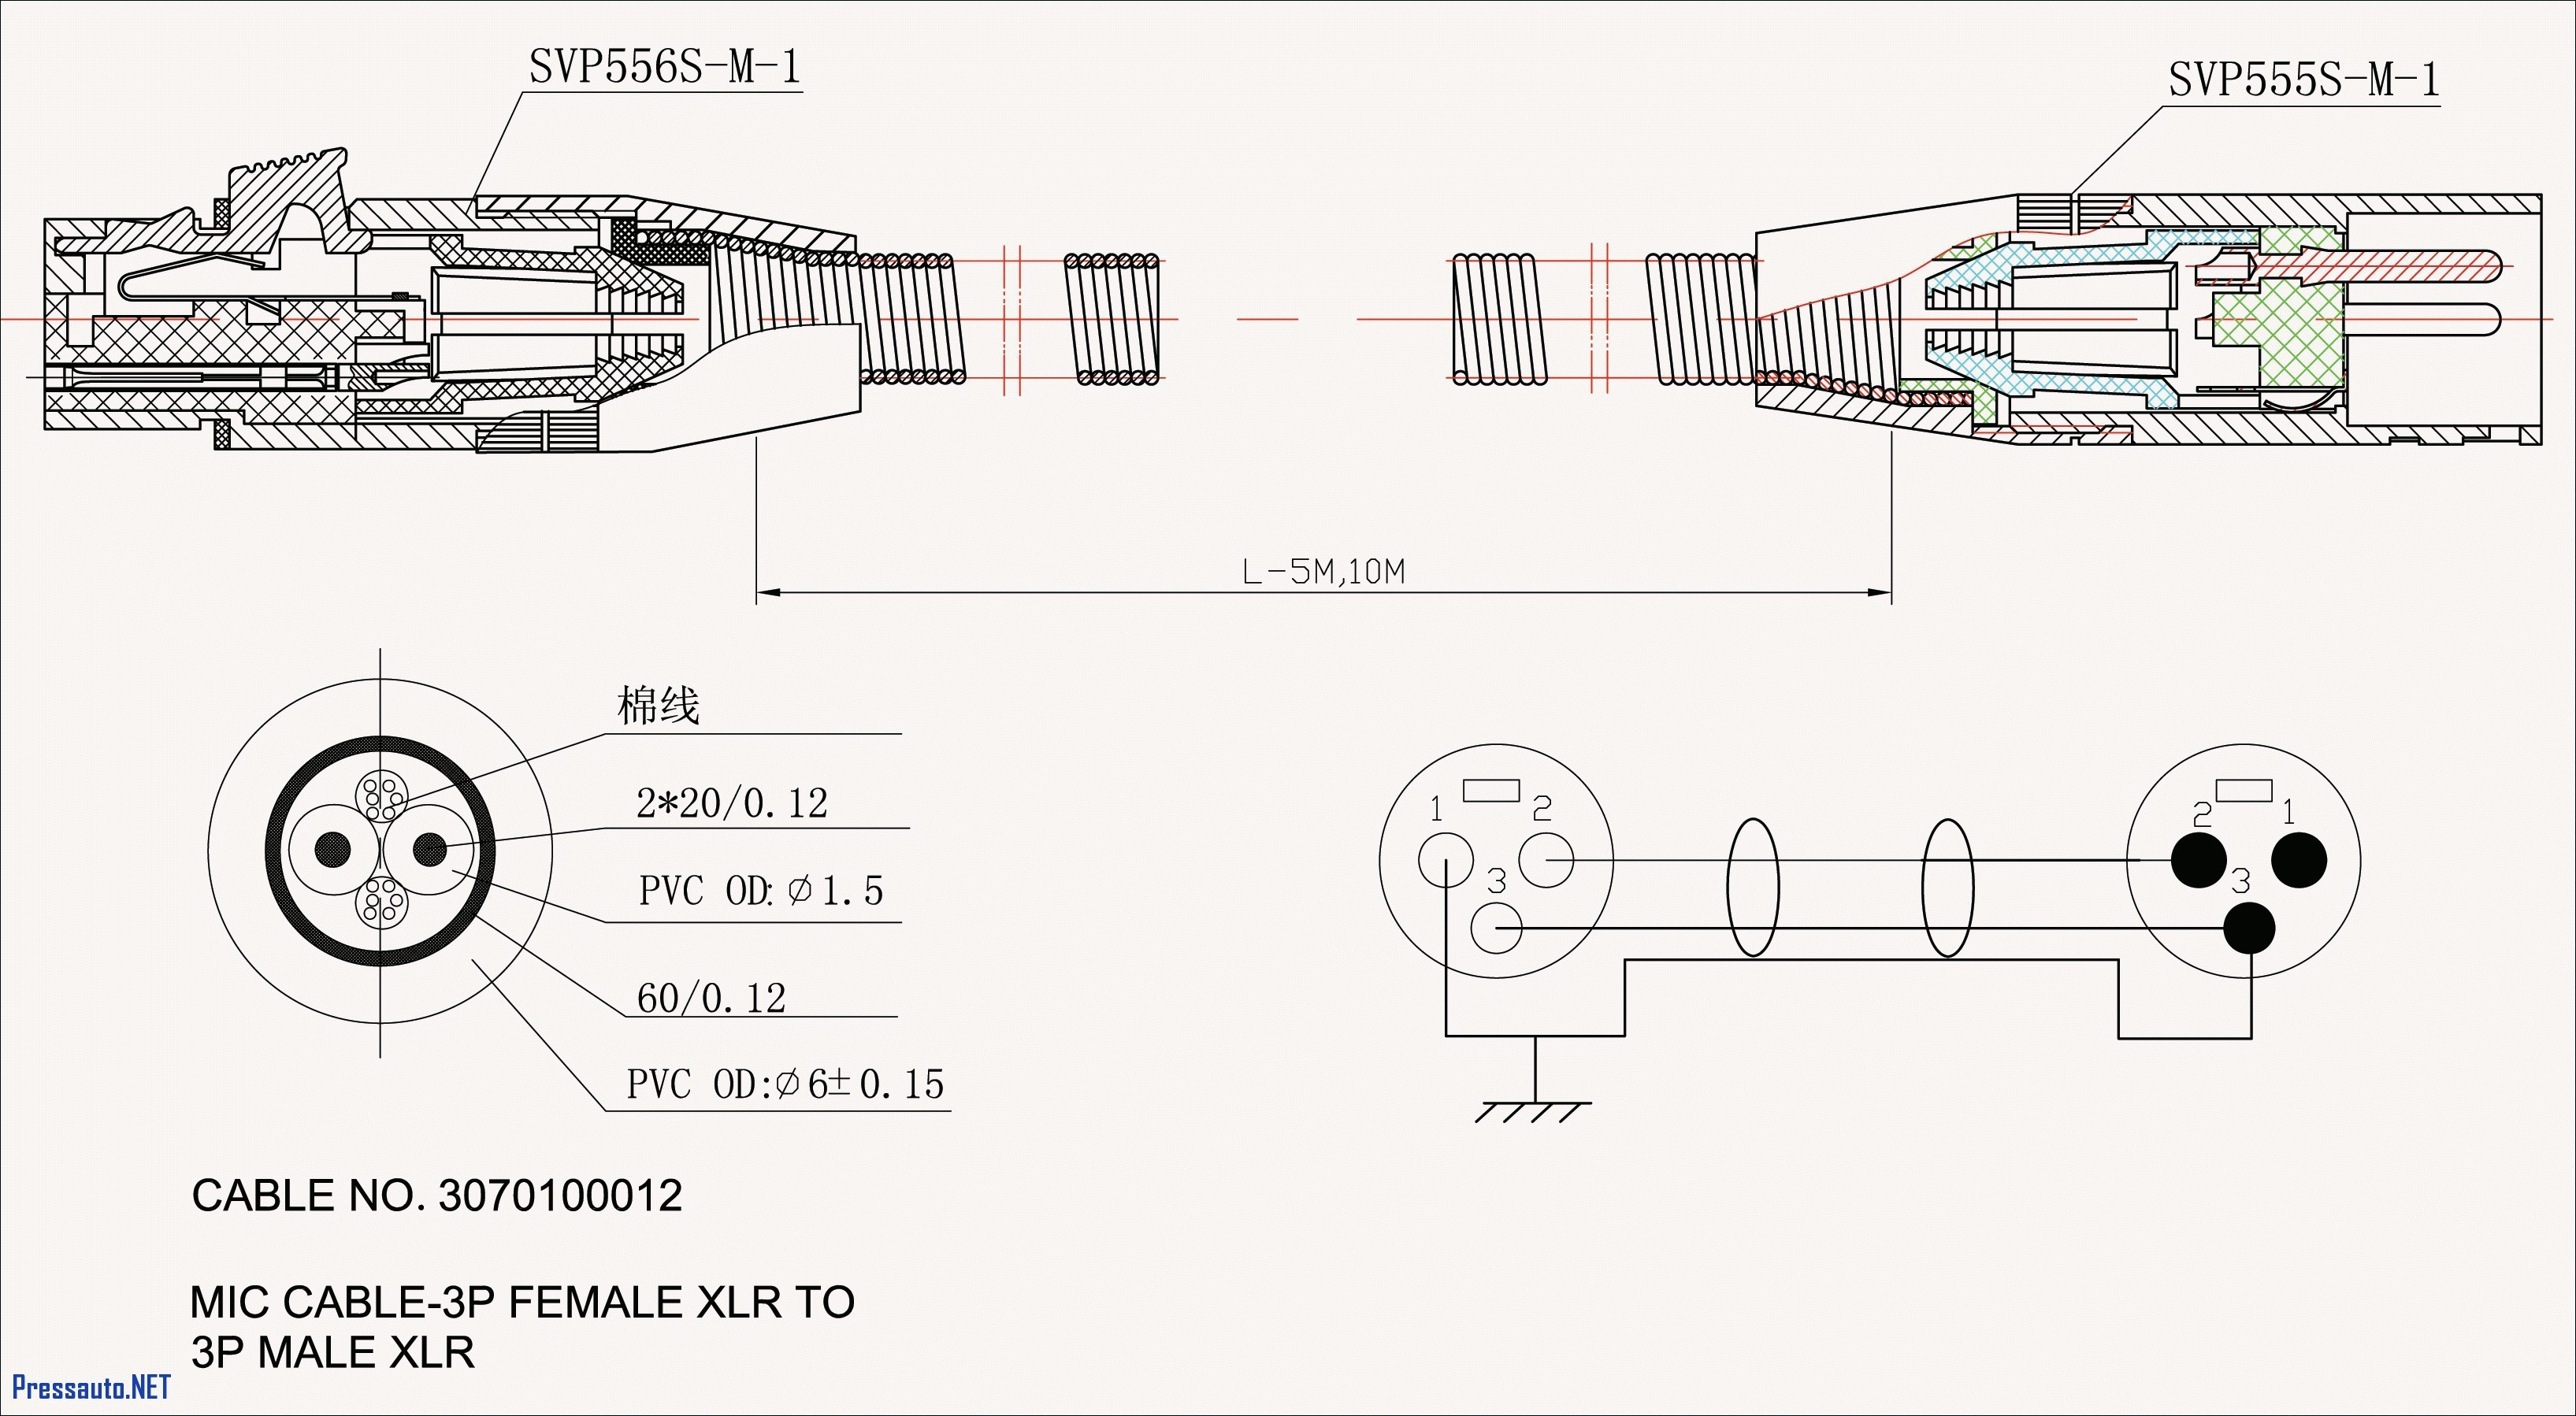 12V Starter Solenoid Wiring Diagram Awesome Dual Coil Latching - 12V Starter Solenoid Wiring Diagram